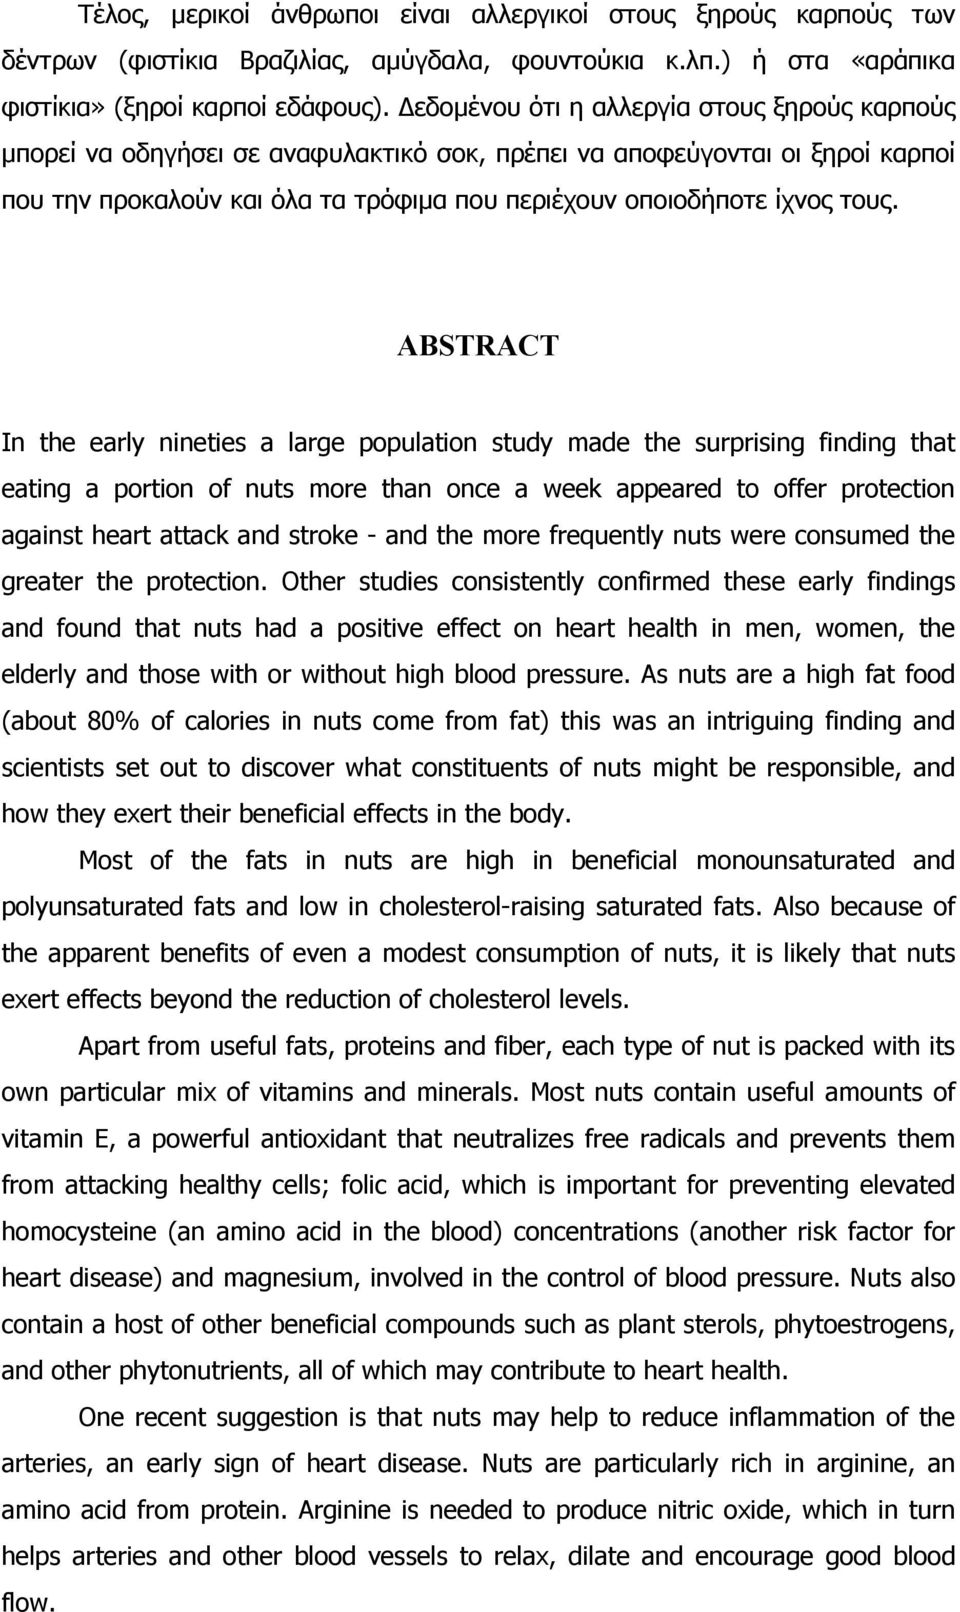 ABSTRACT In the early nineties a large population study made the surprising finding that eating a portion of nuts more than once a week appeared to offer protection against heart attack and stroke -